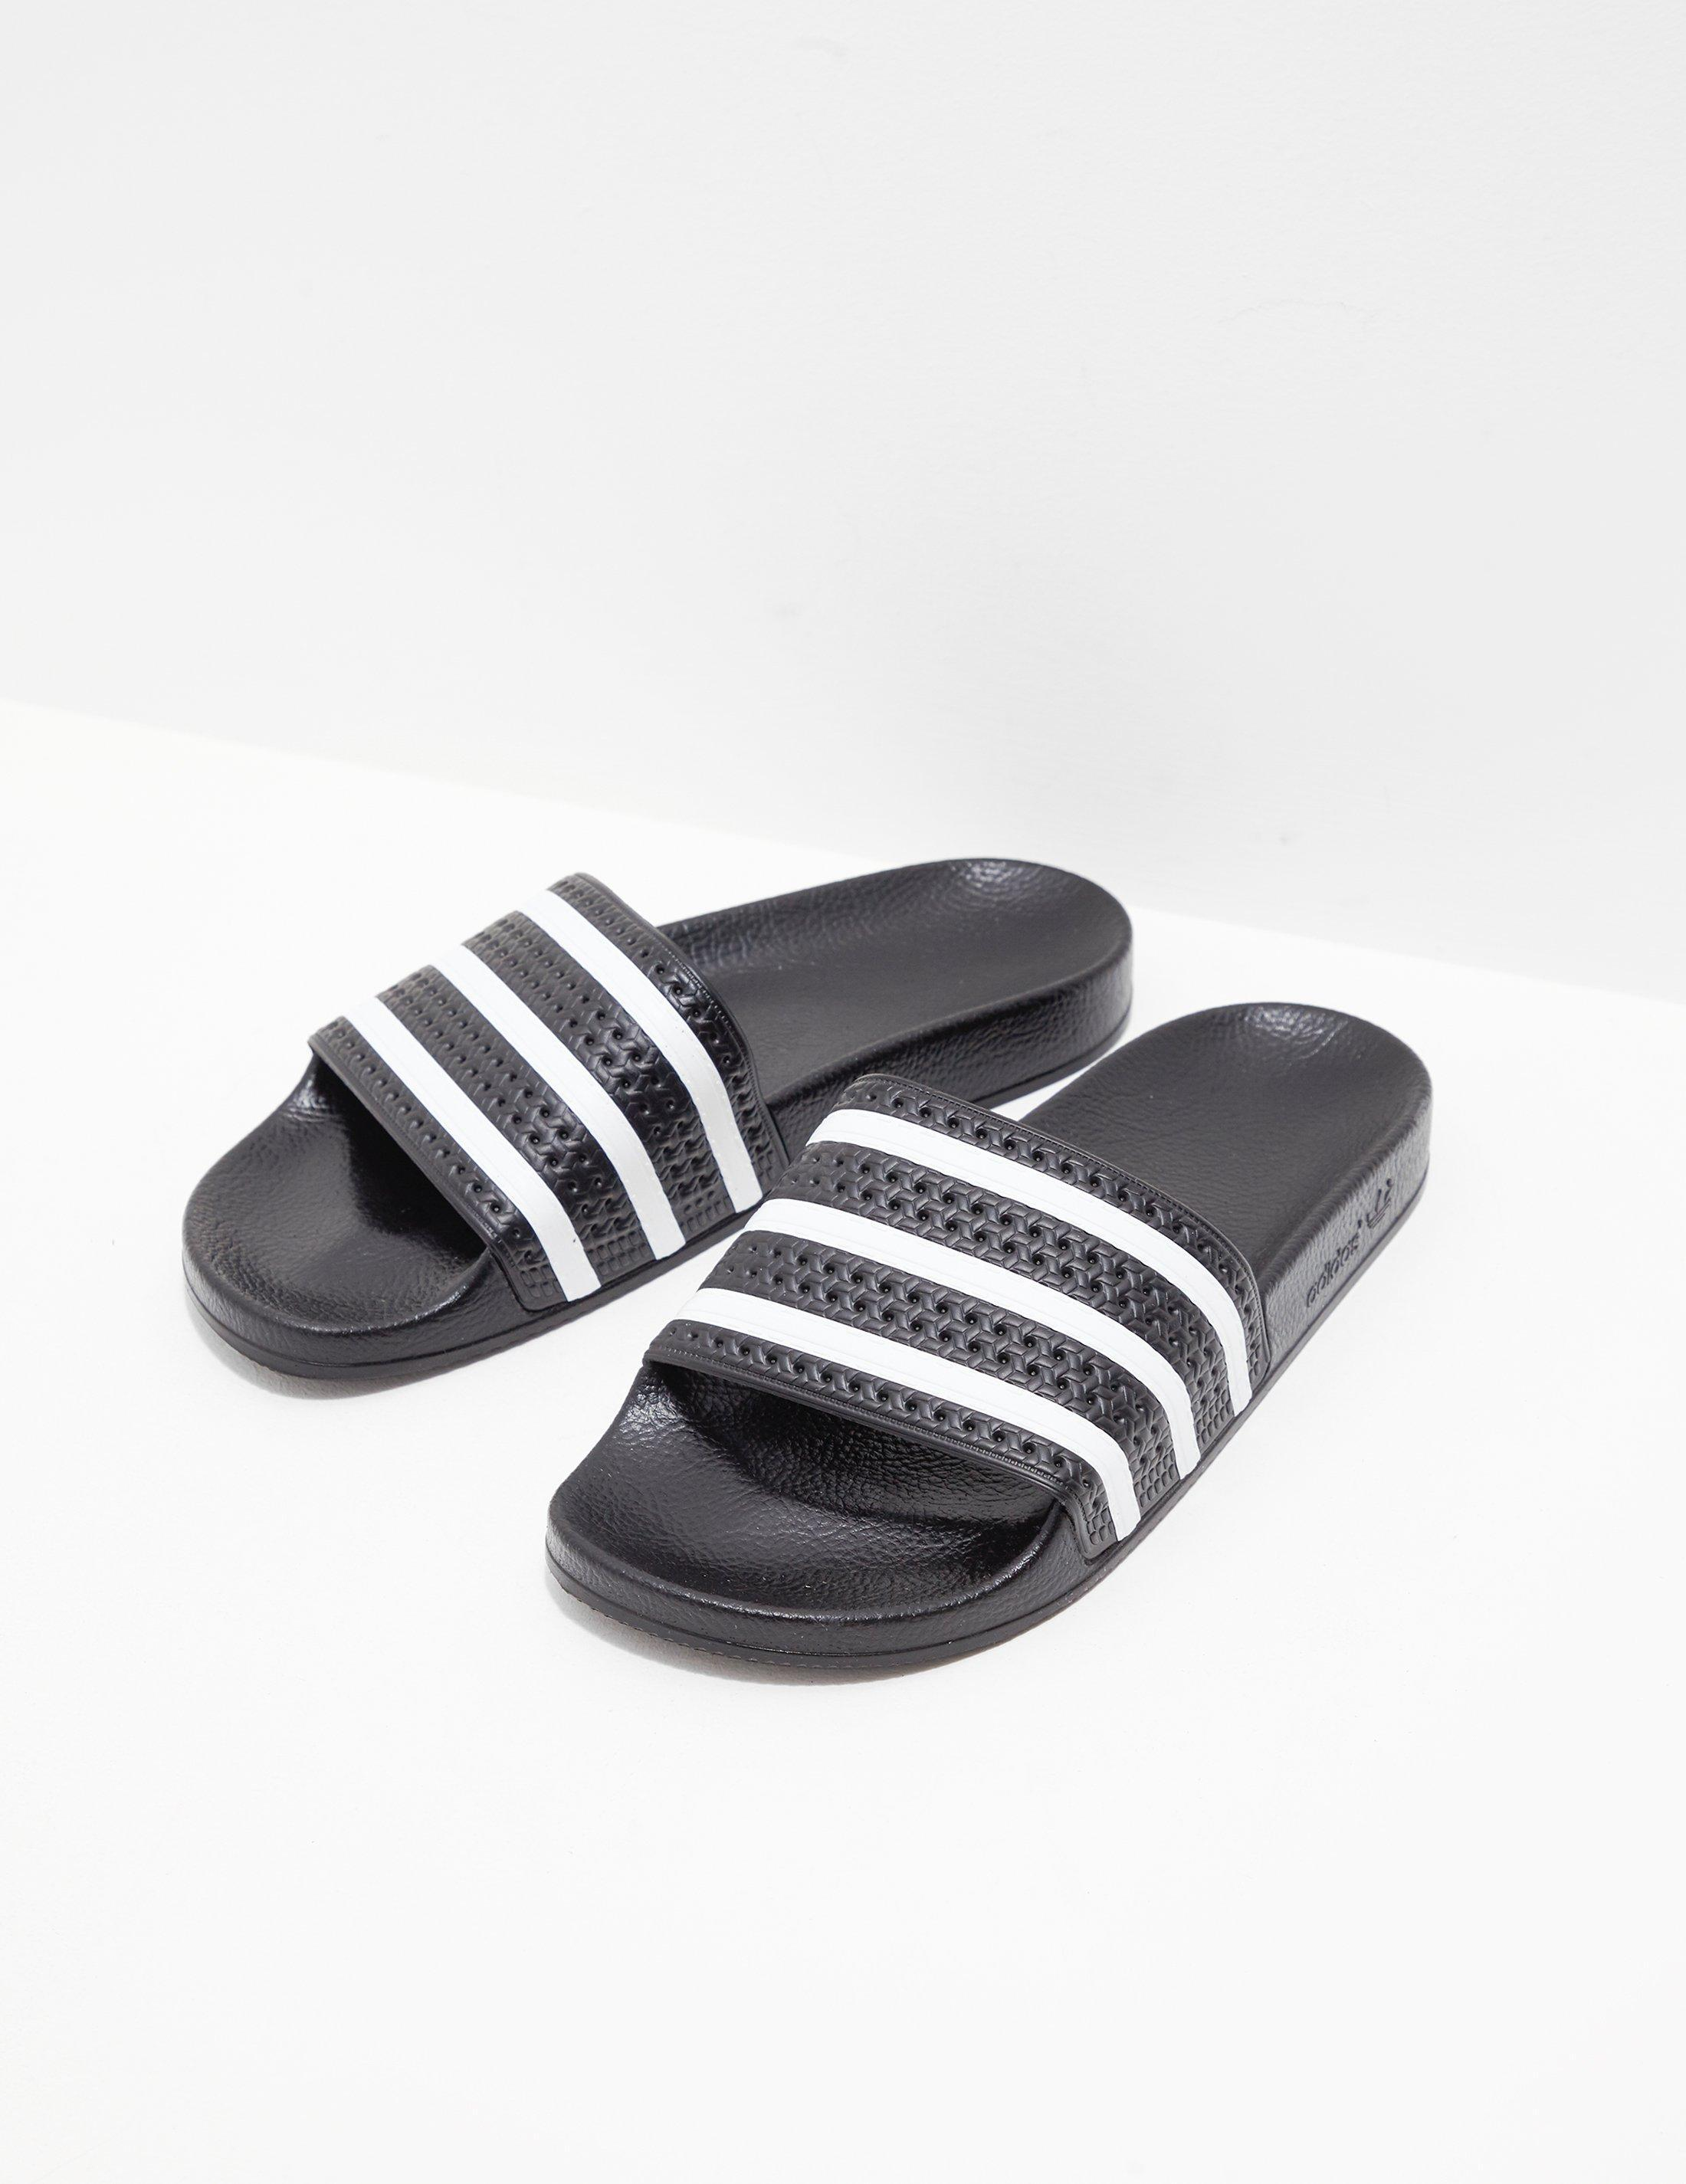 21eccc1a1e26 Lyst - adidas Originals Adilette Slides Black in Black for Men